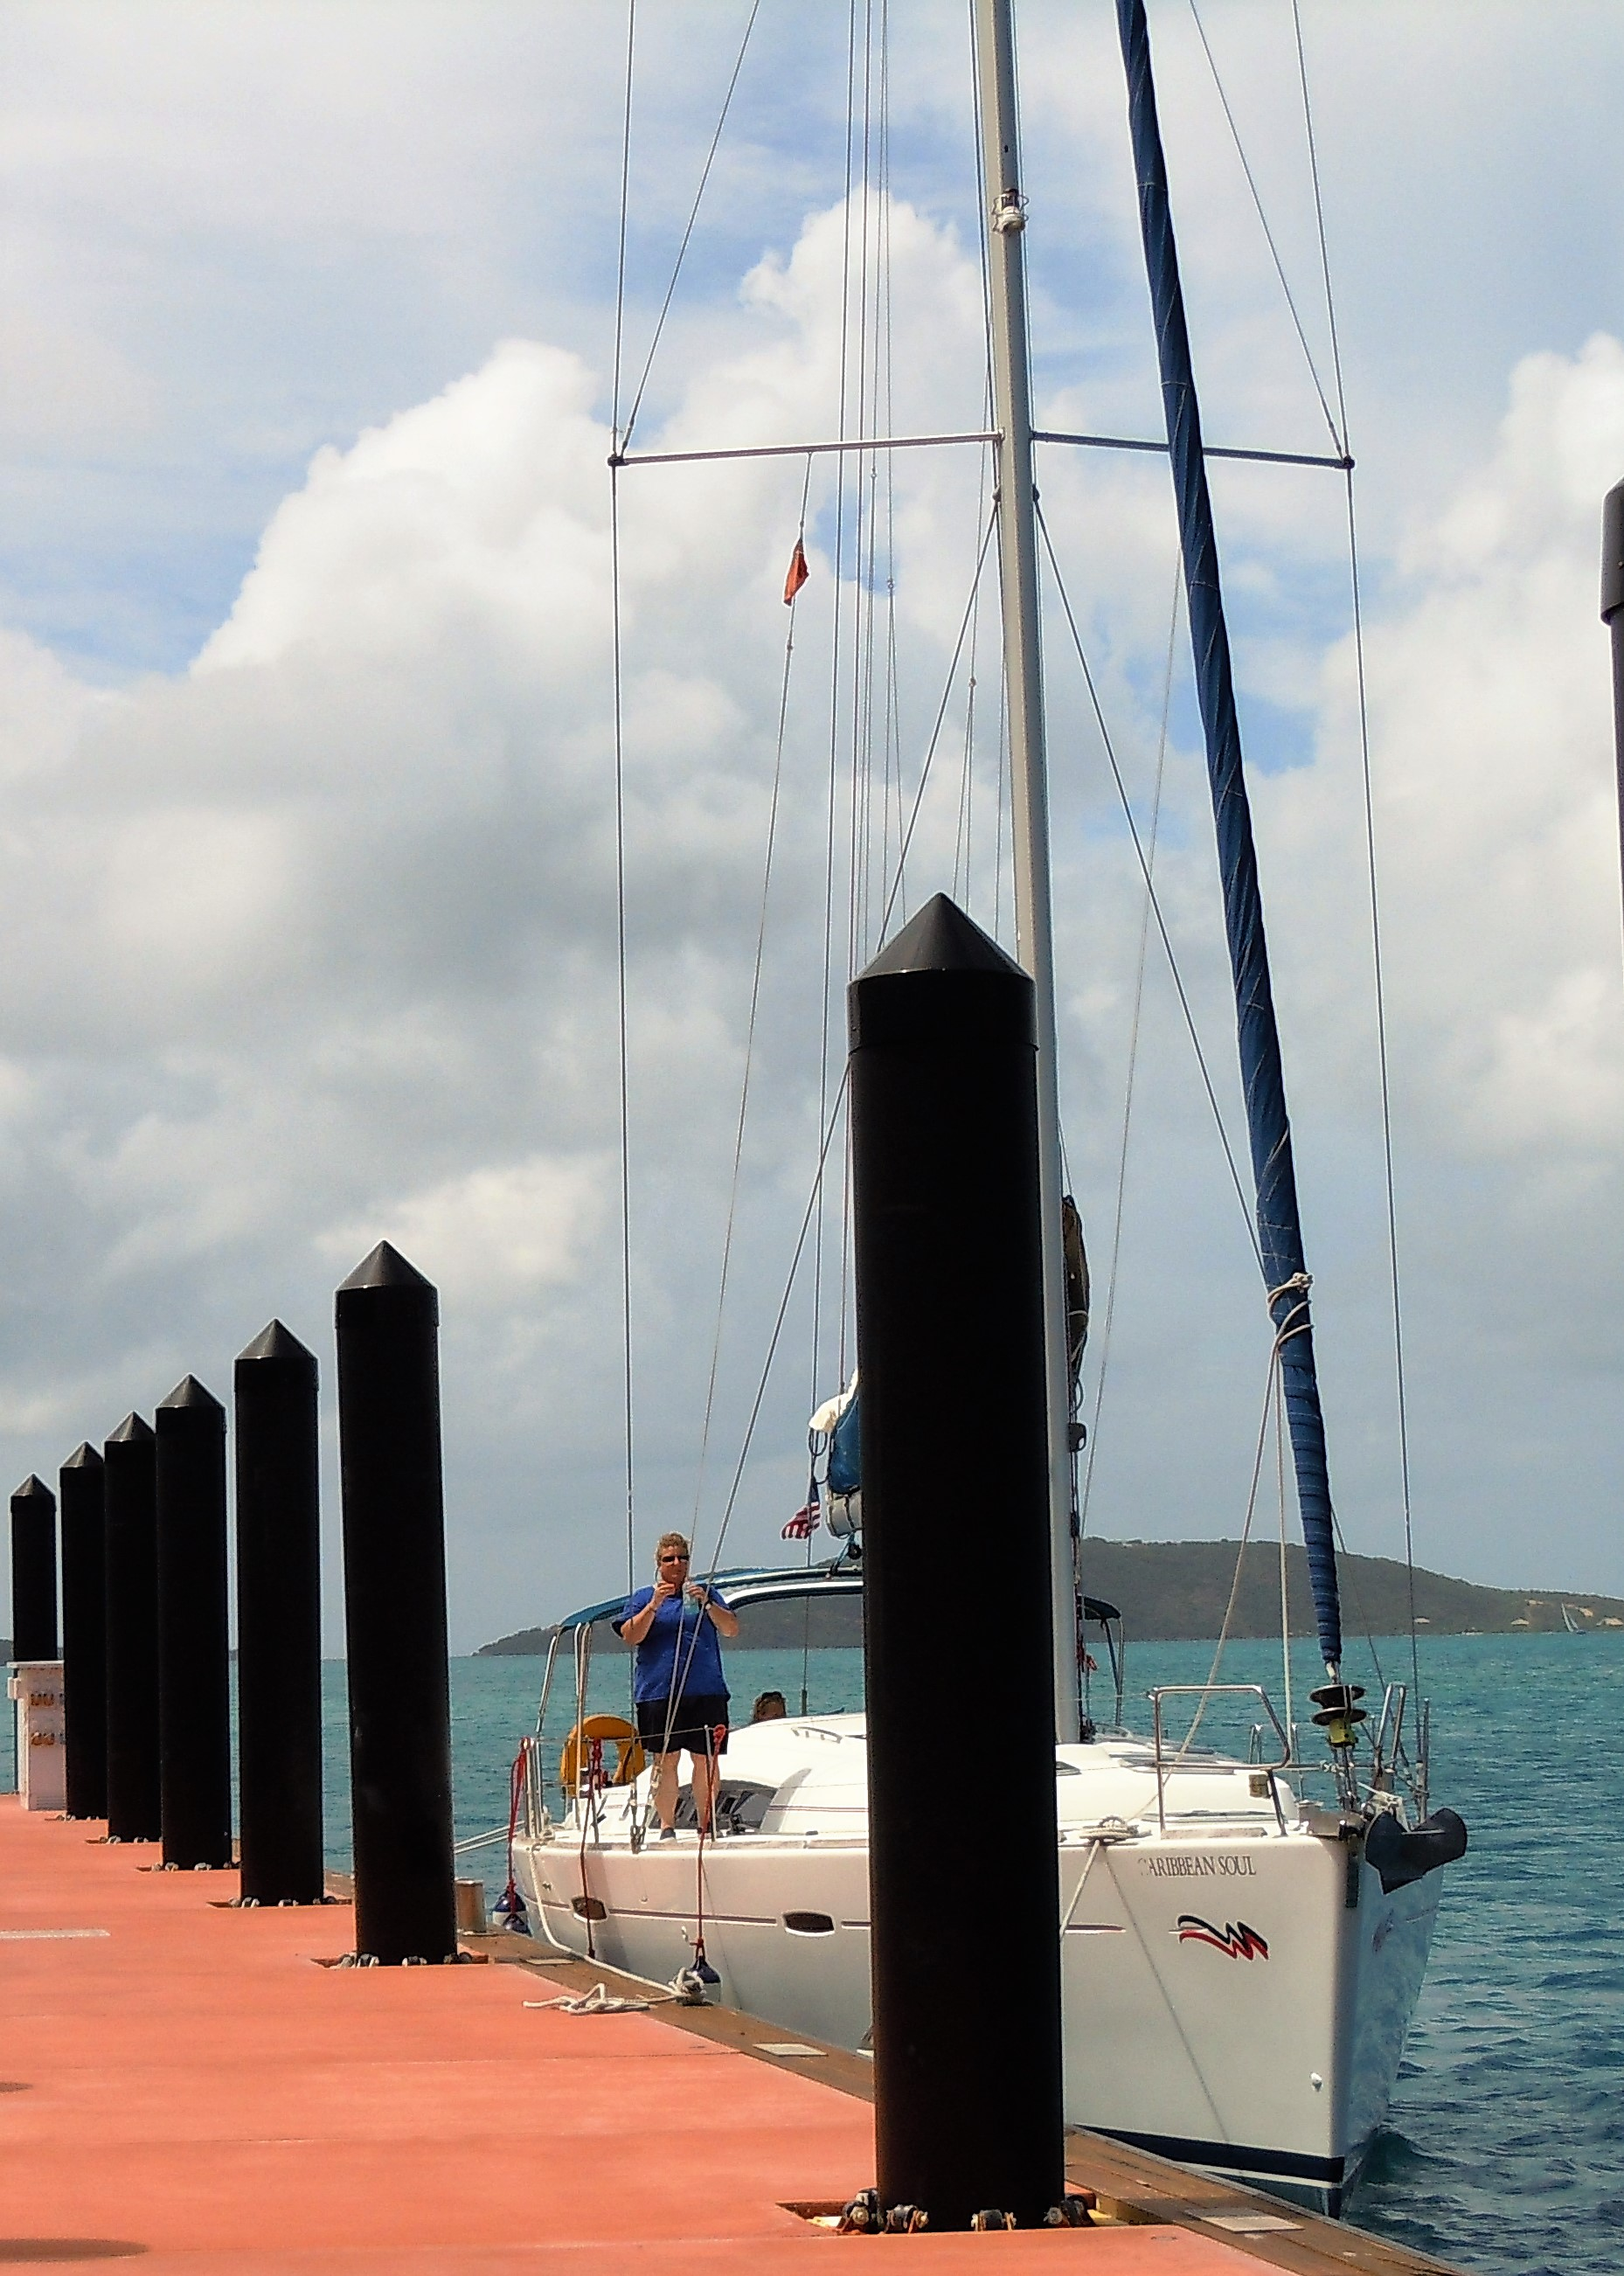 Docking practice sailing school BVI